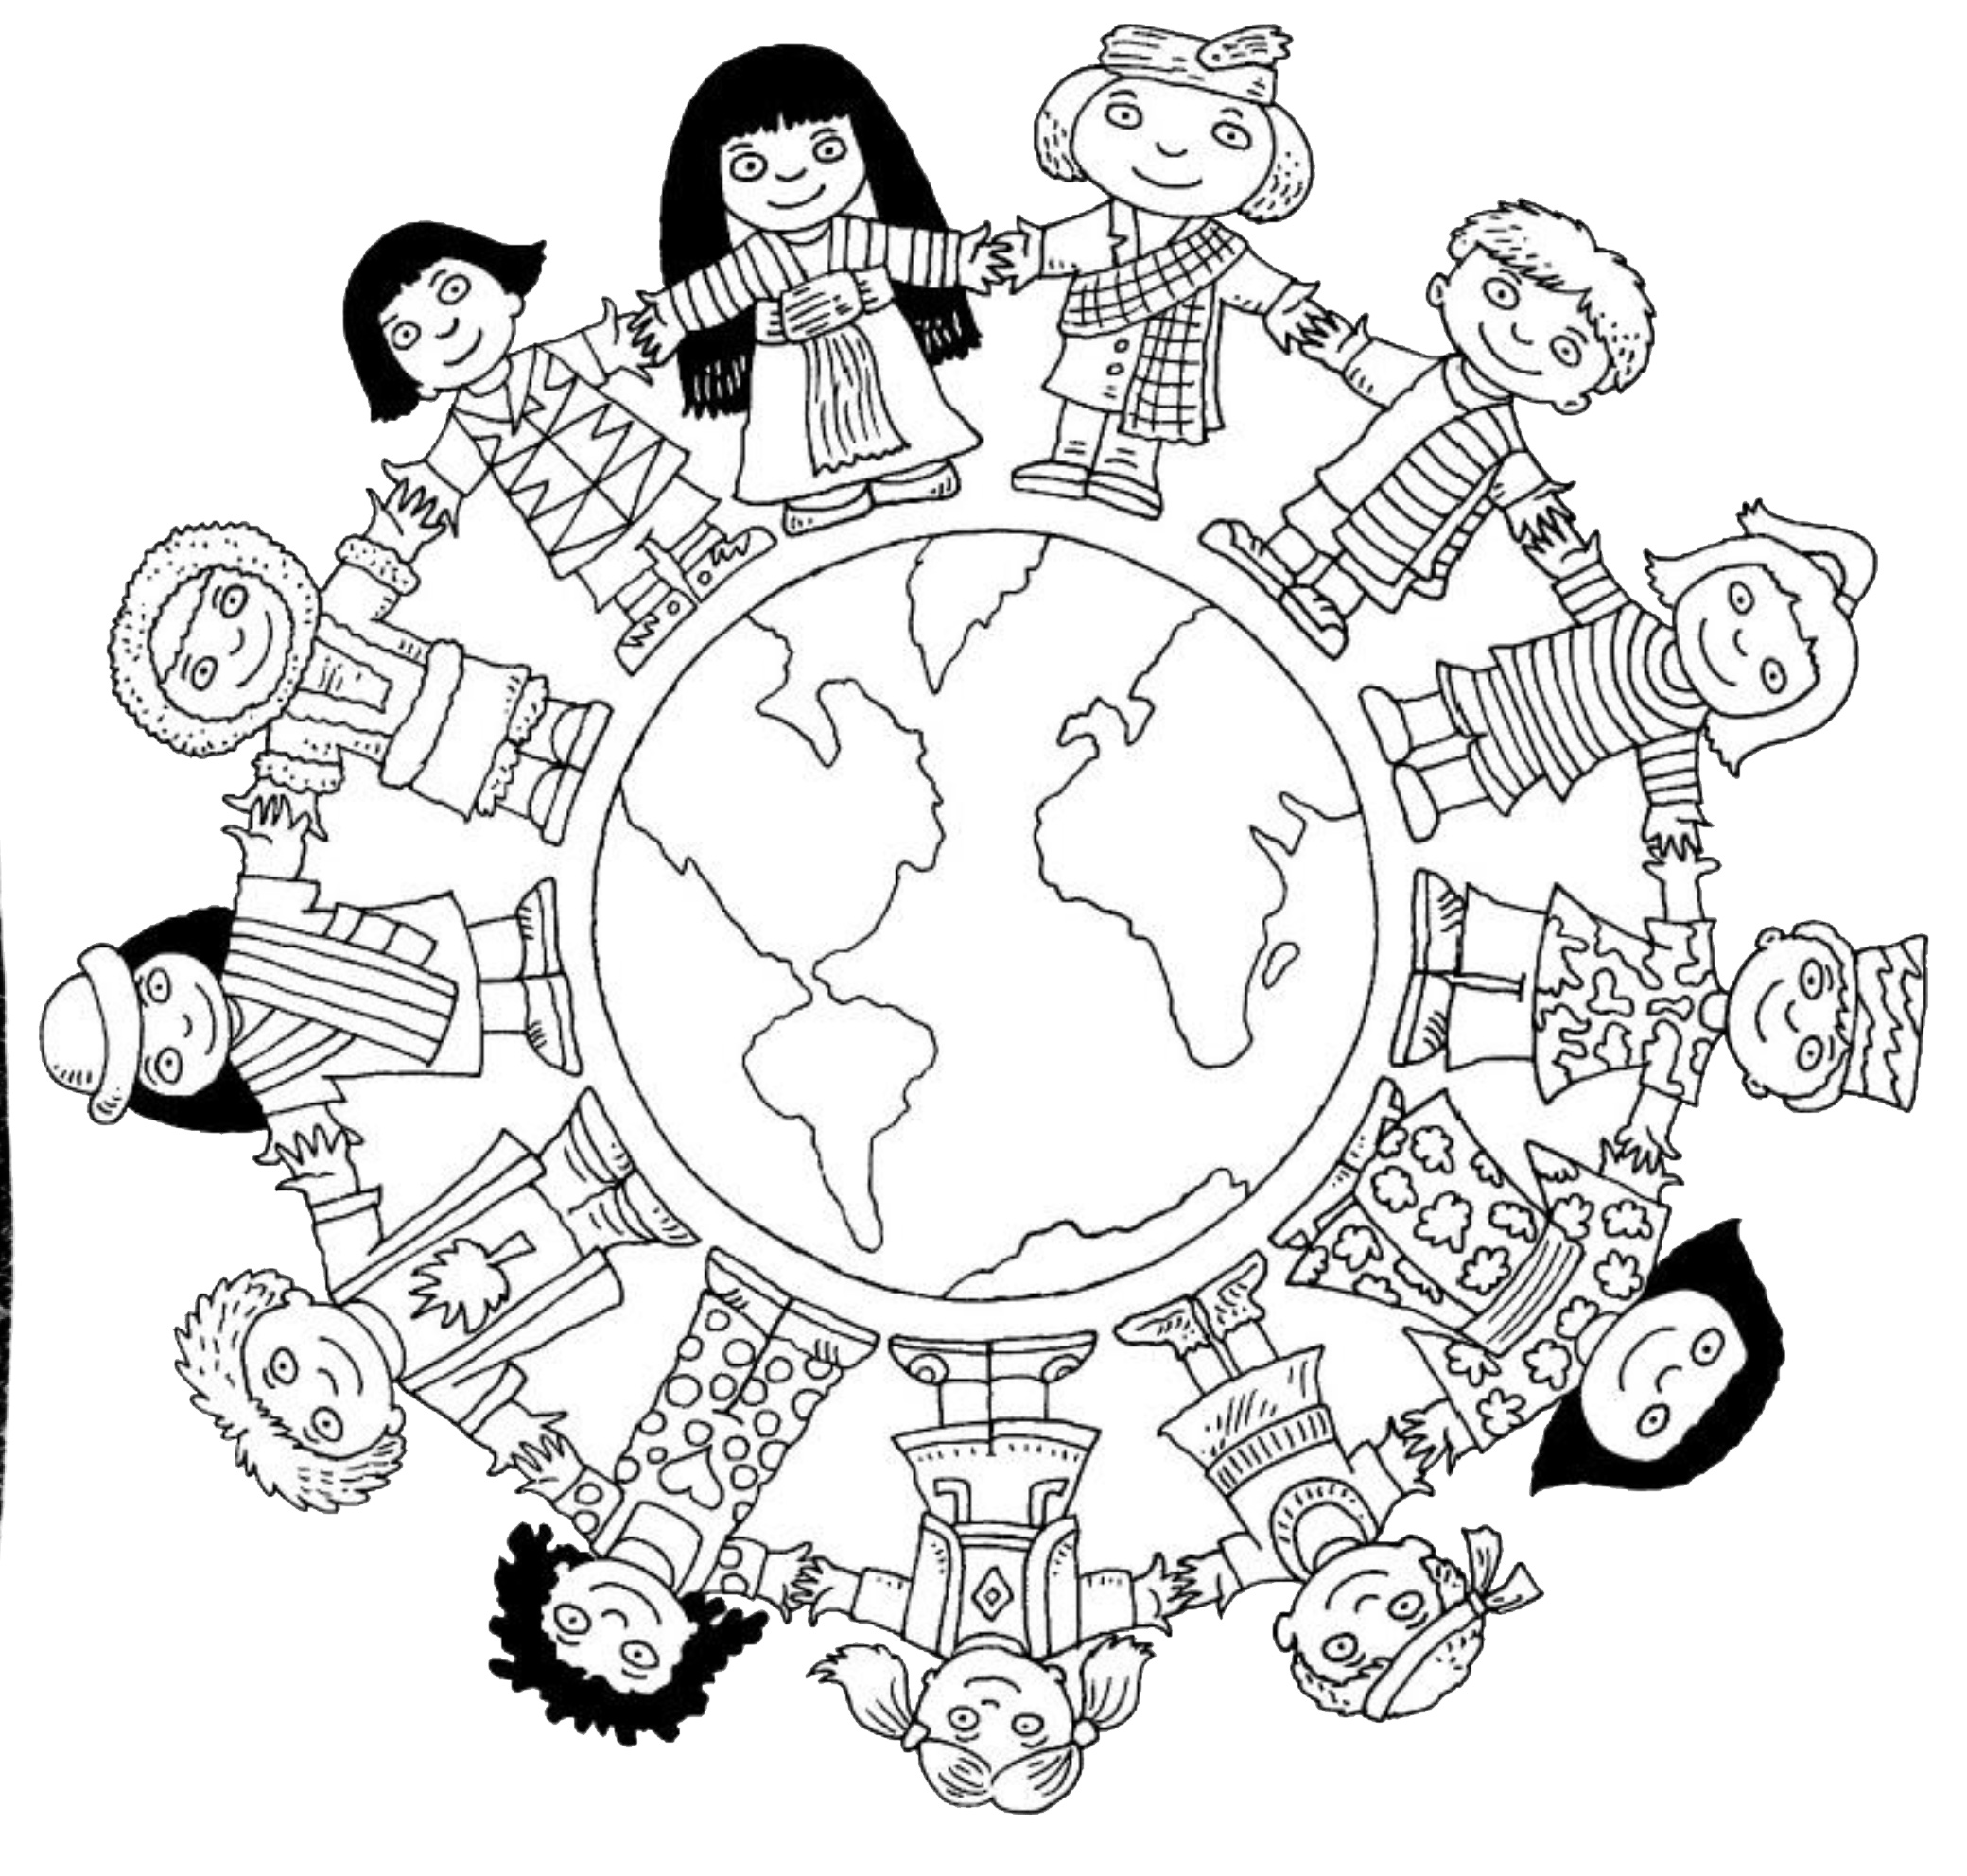 Multicultural Diversity Coloring Pages